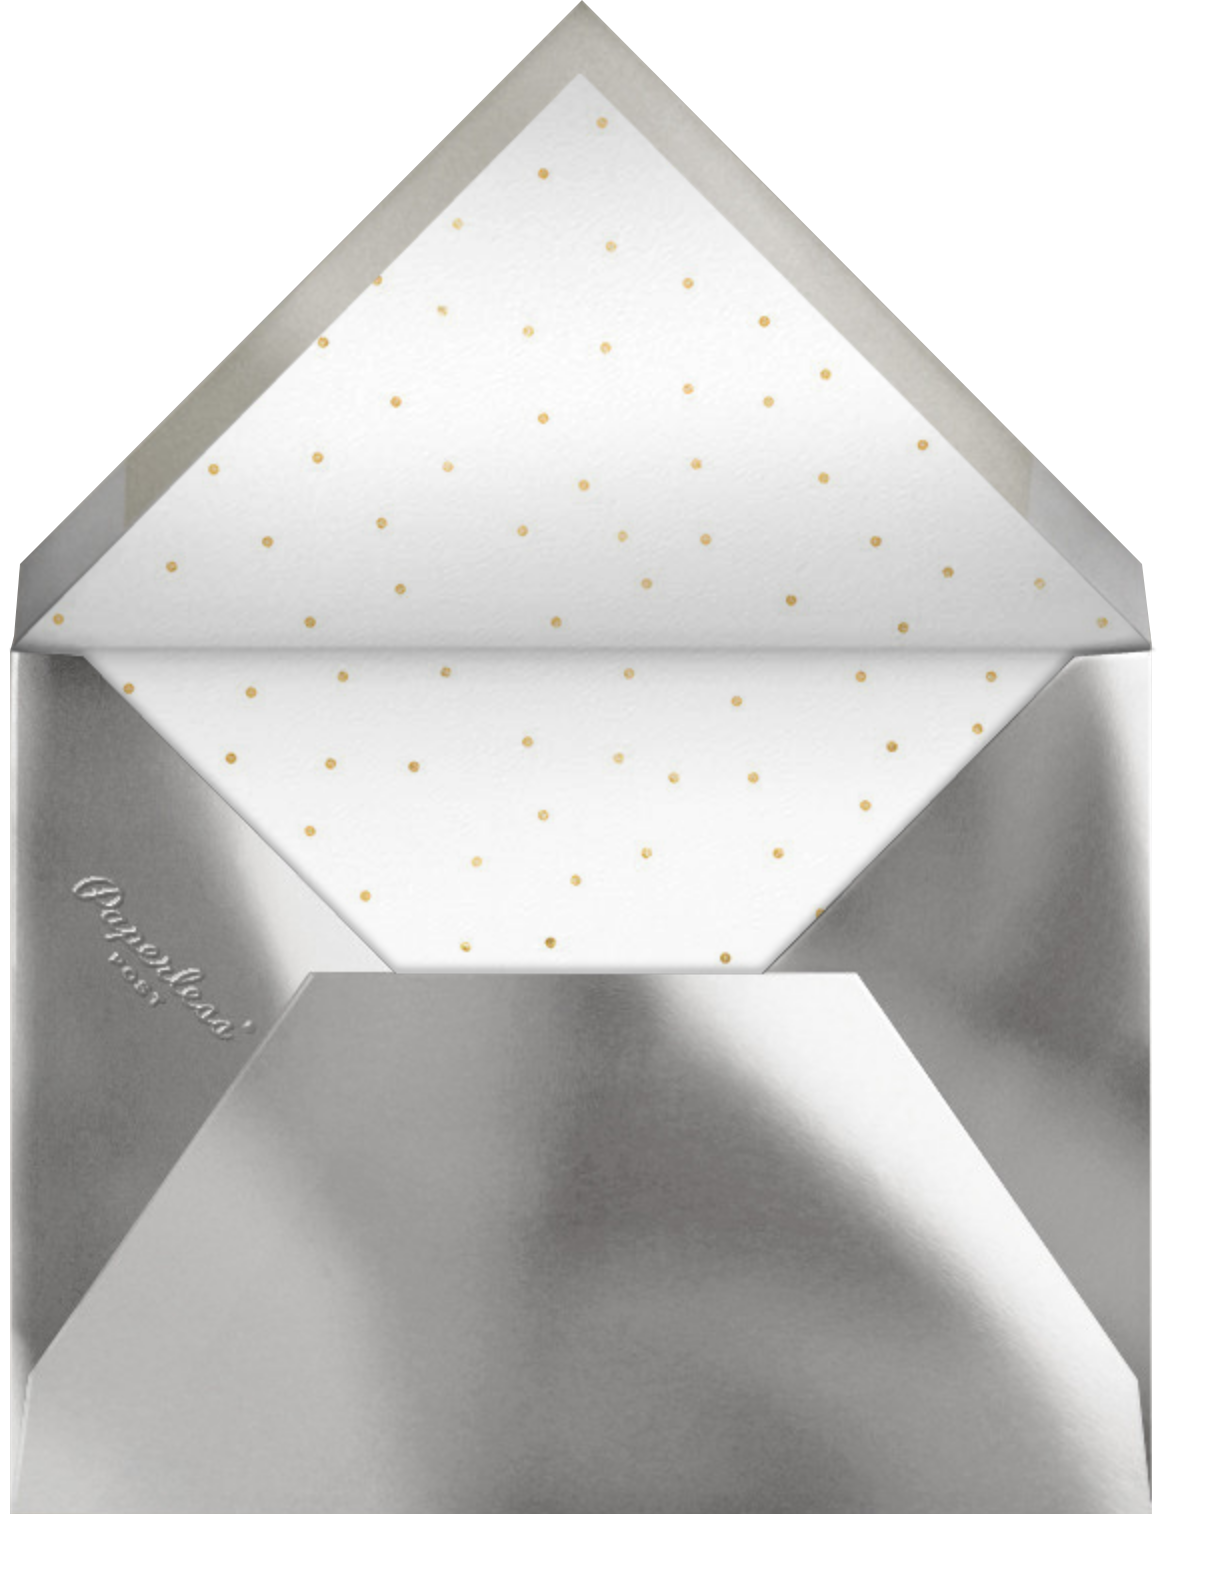 Fort Knox (Square) - Paperless Post - Holiday party - envelope back